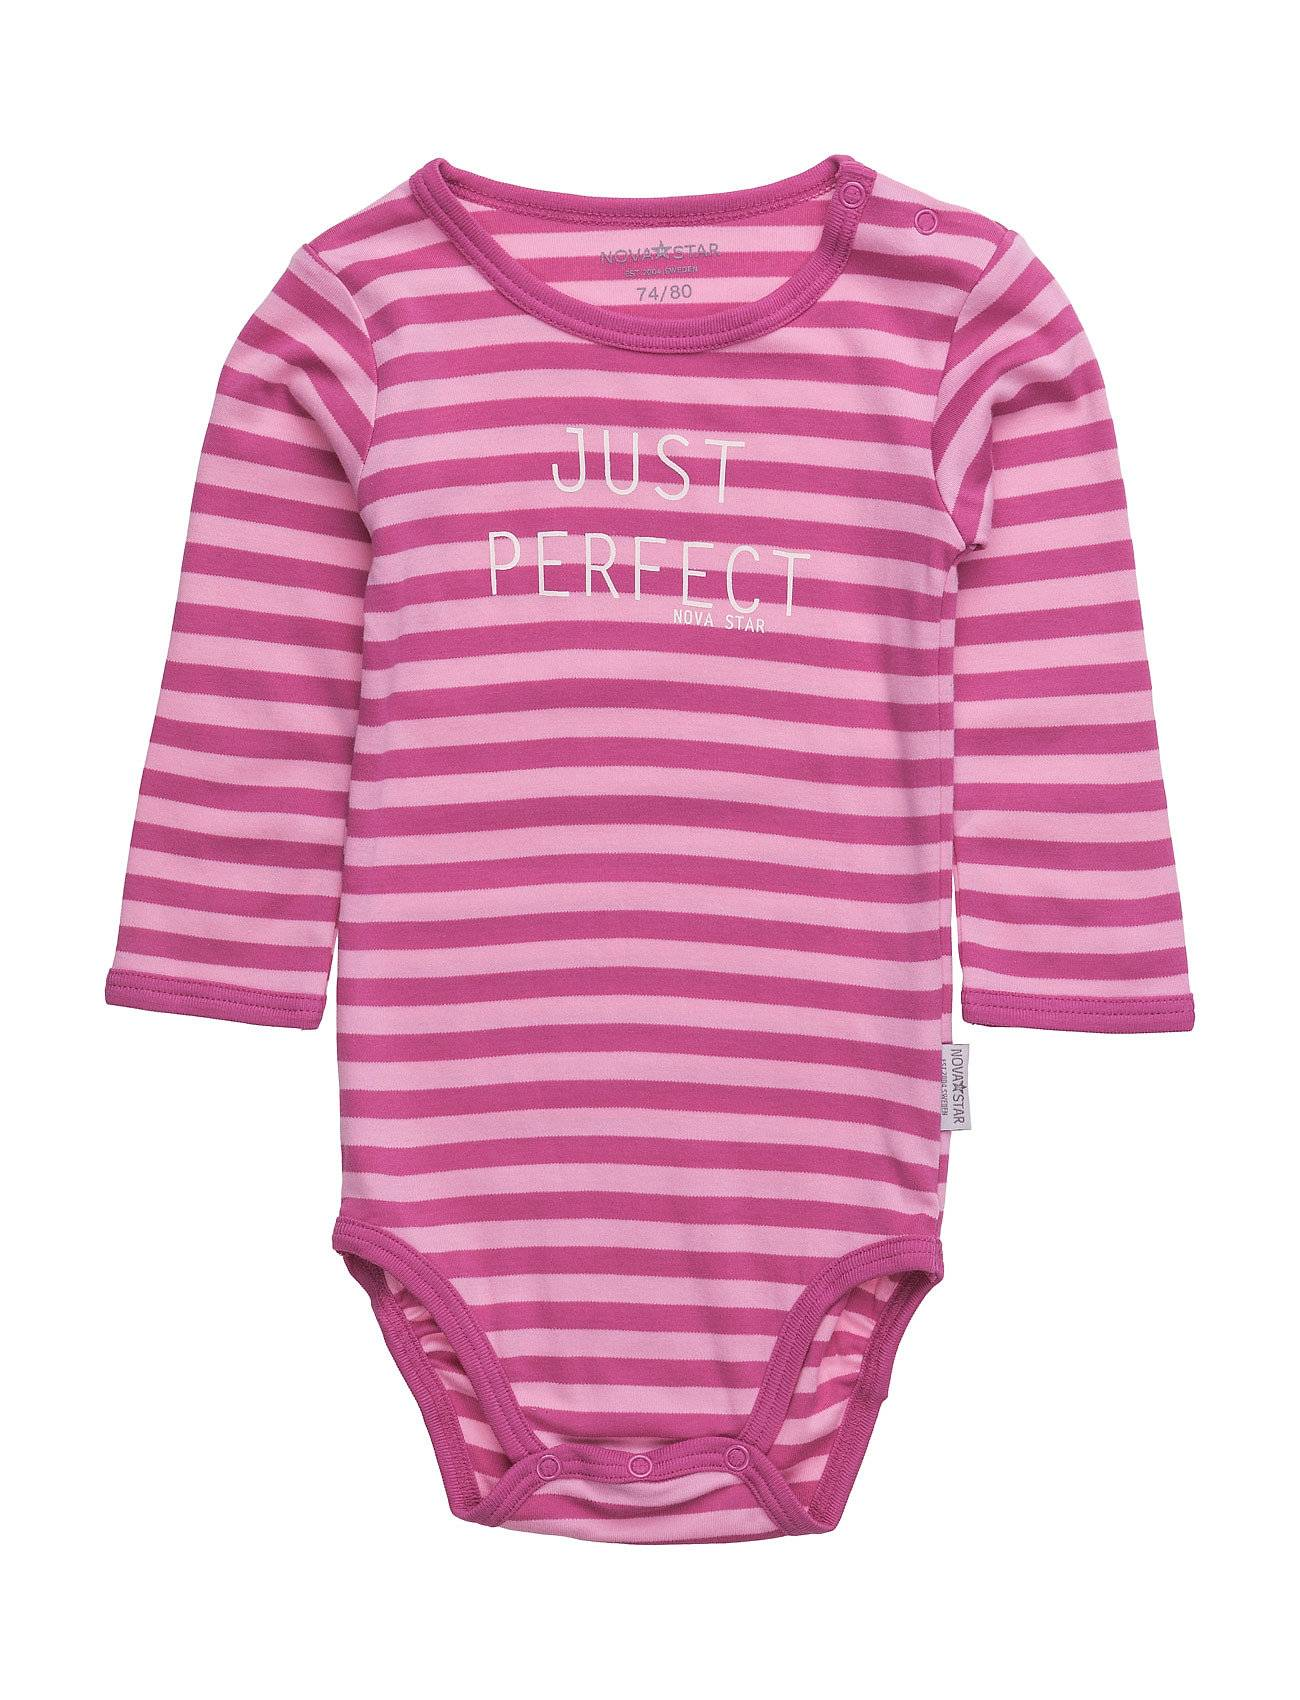 NOVA STAR Pink Striped Body